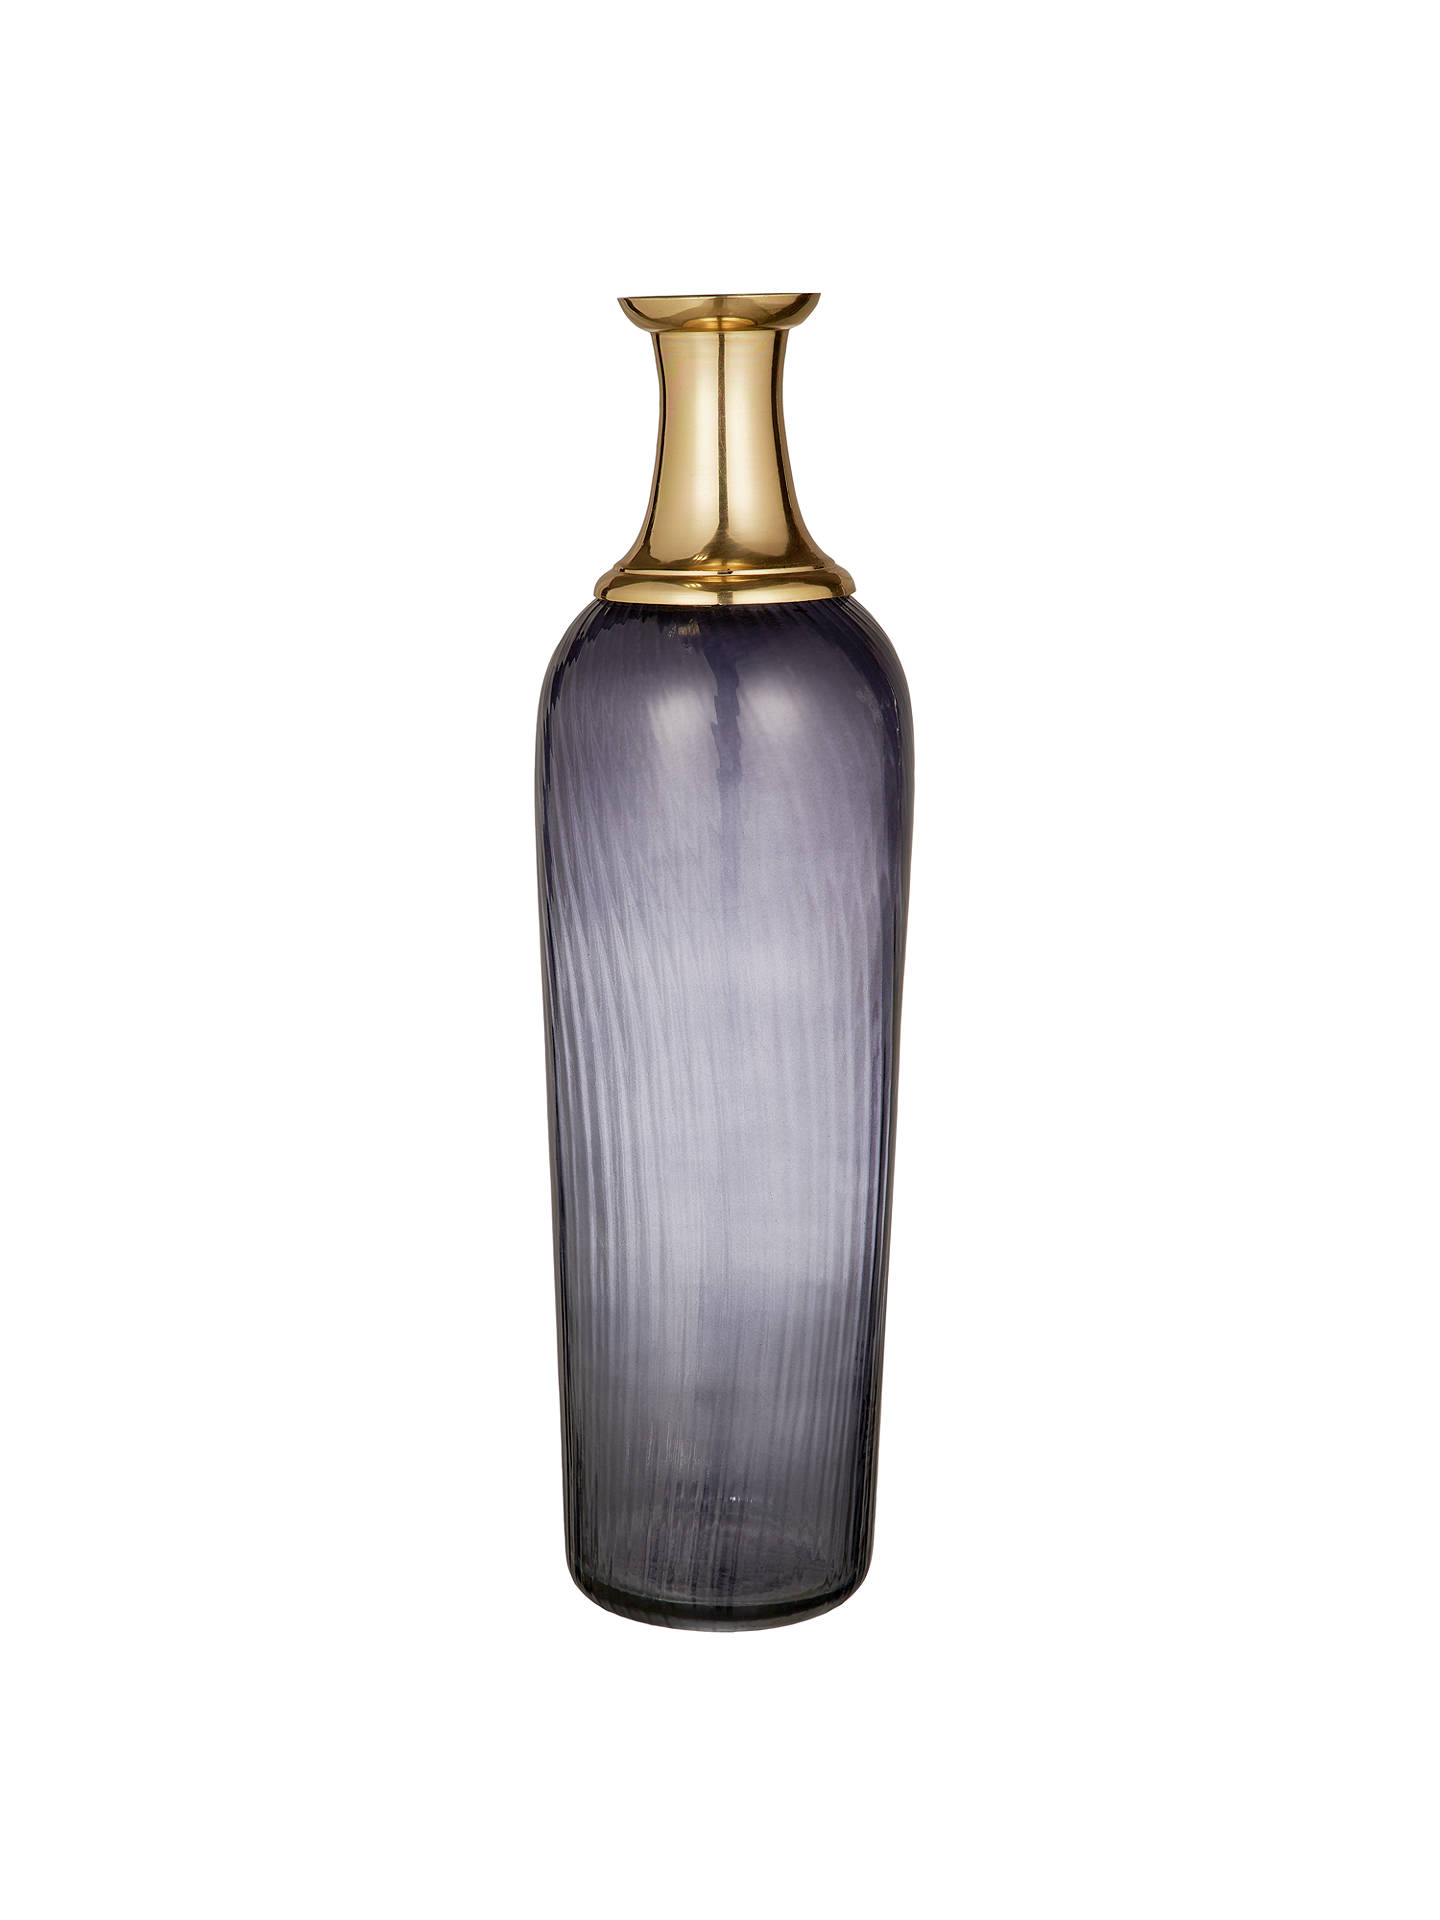 BuyJohn Lewis & Partners Glass Vase, Blue/Gold, H38cm Online at johnlewis.com